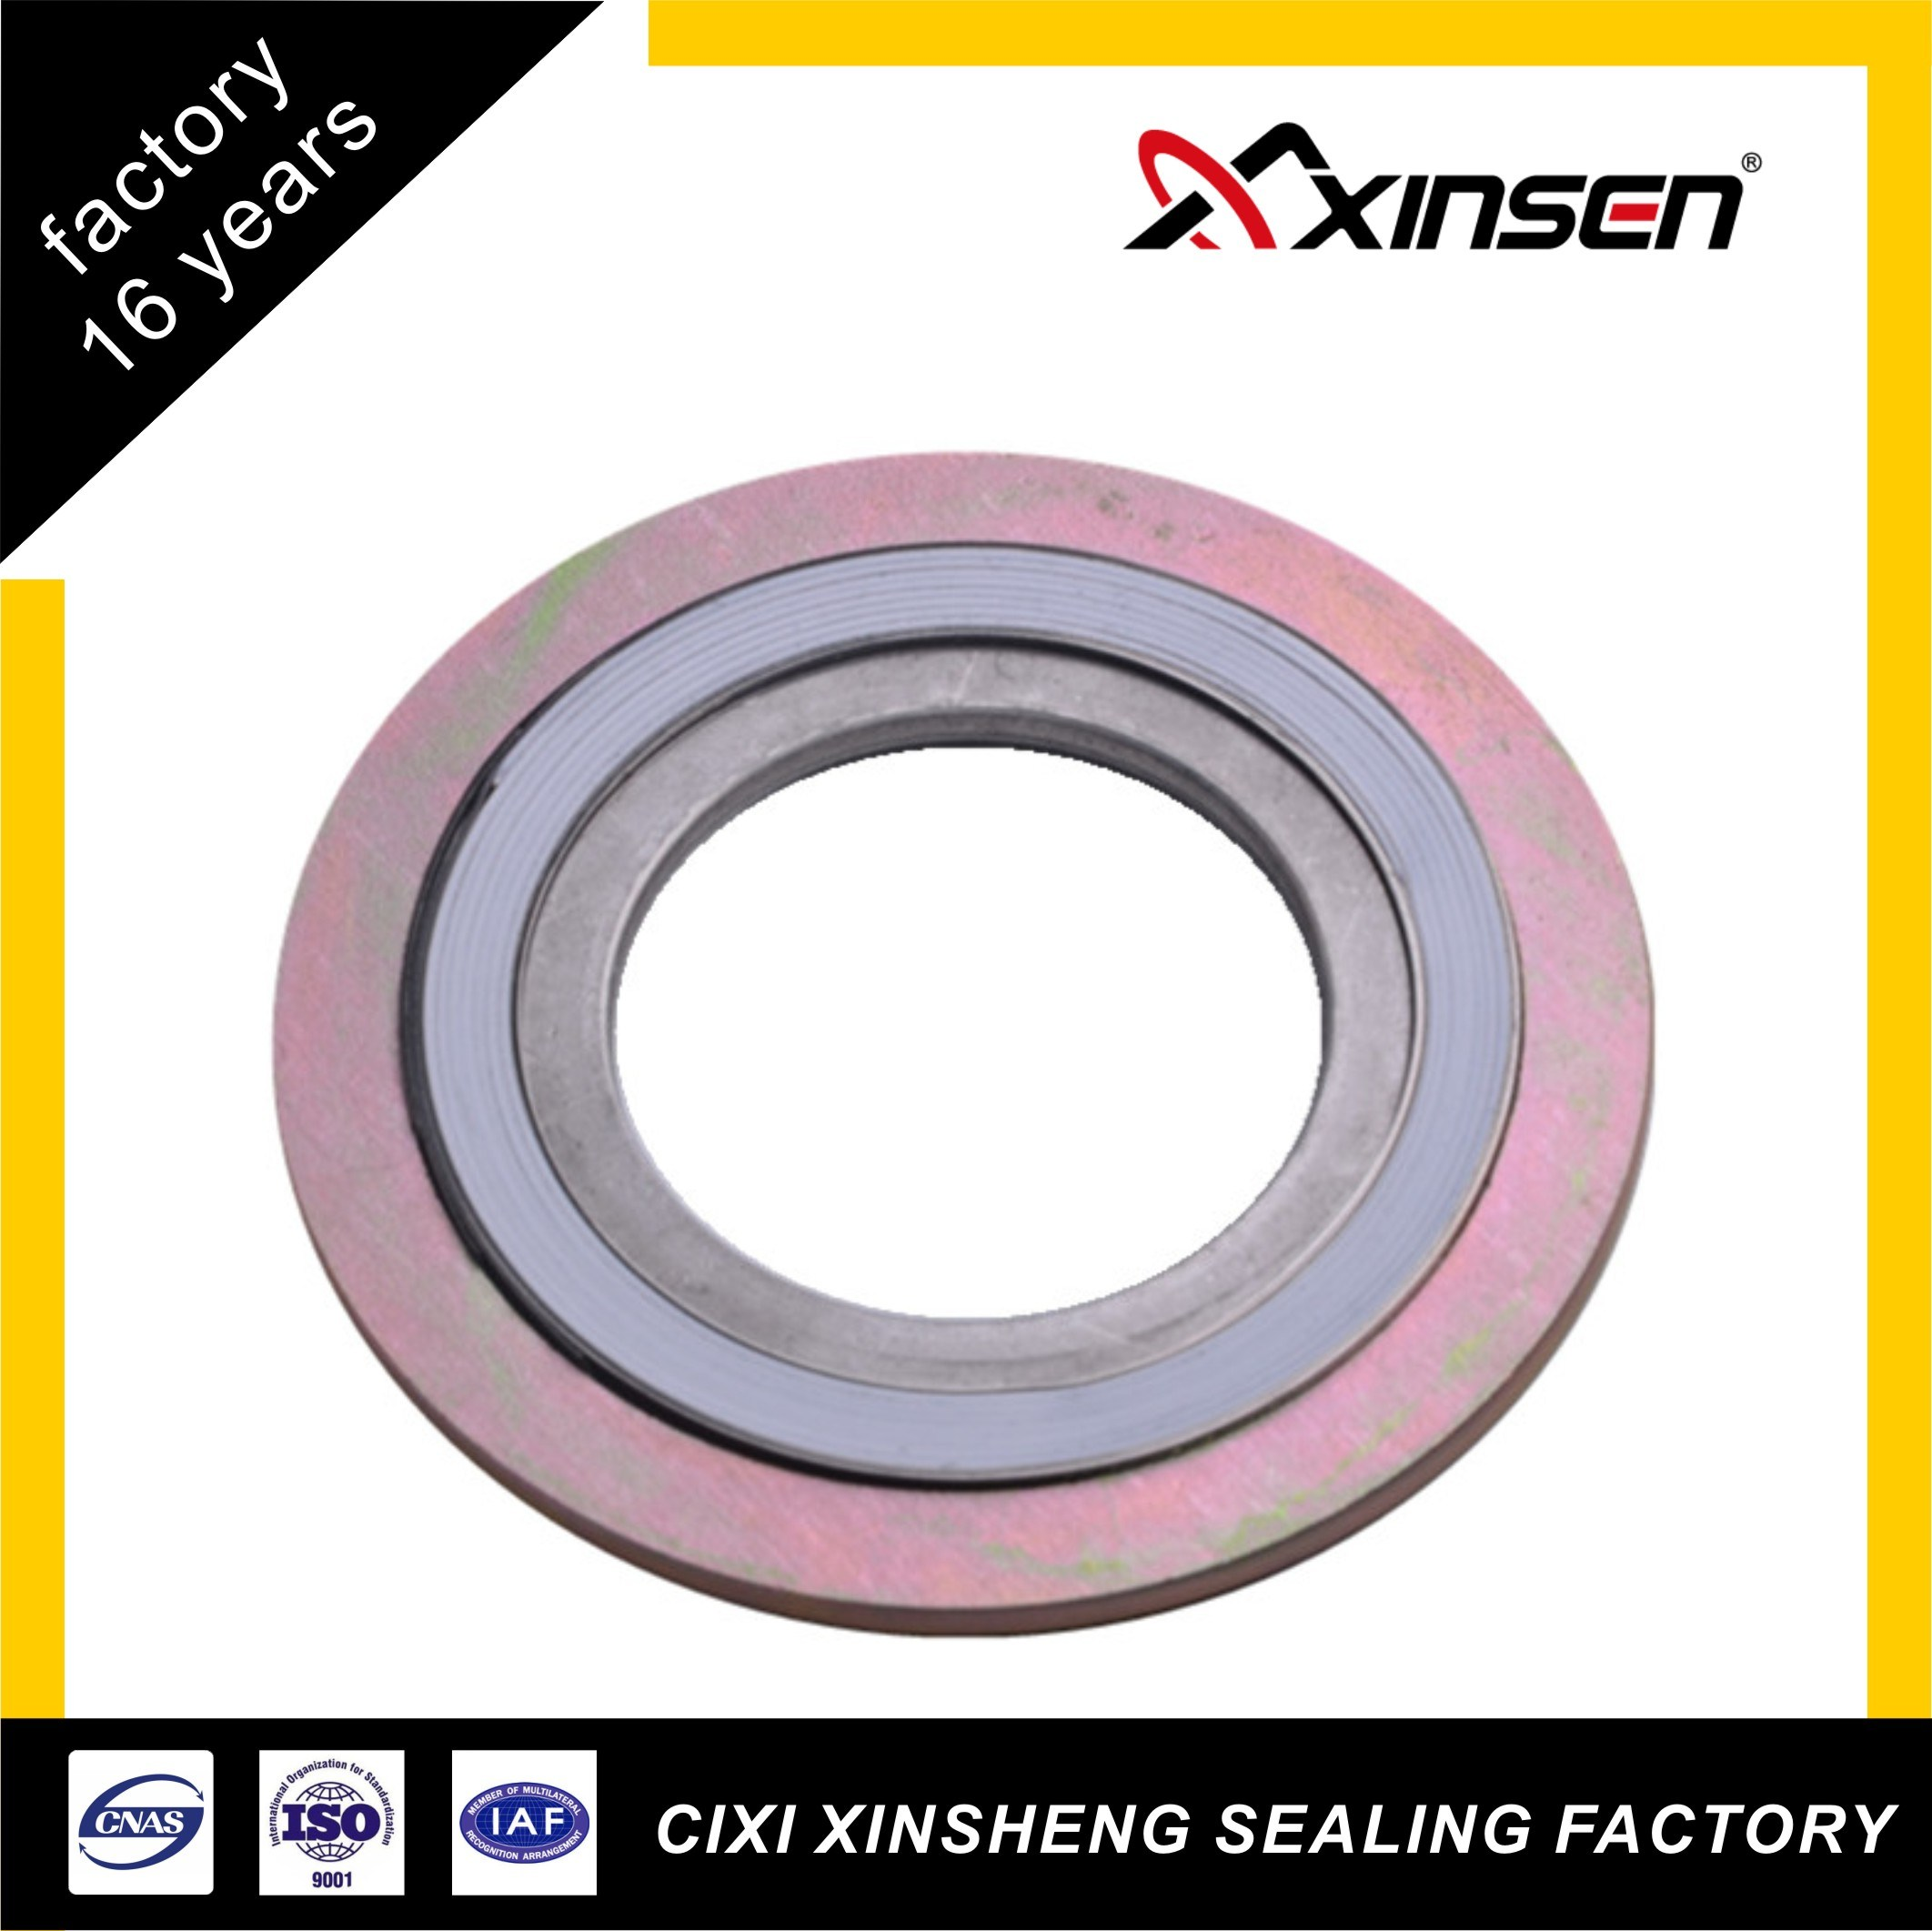 [Hot Item] PTFE Spiral Wound Gasket with CS Outer Ring and SS304 Inner Ring  ASME B16 20